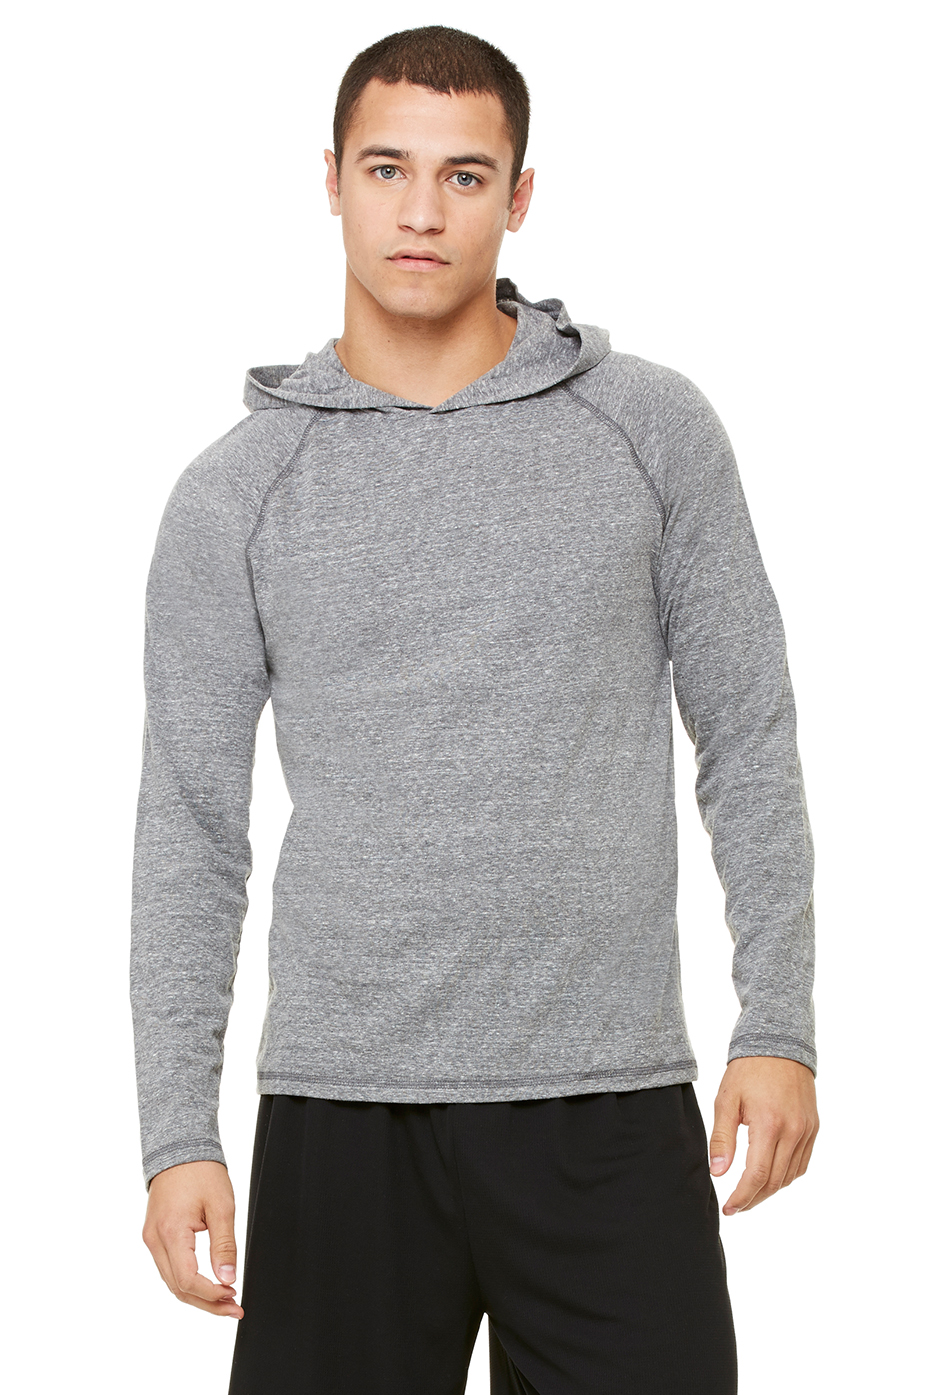 fdbfced3054 Wholesale Hoodies | Workout Hoodies | Tri Blend T Shirt | Mens ...